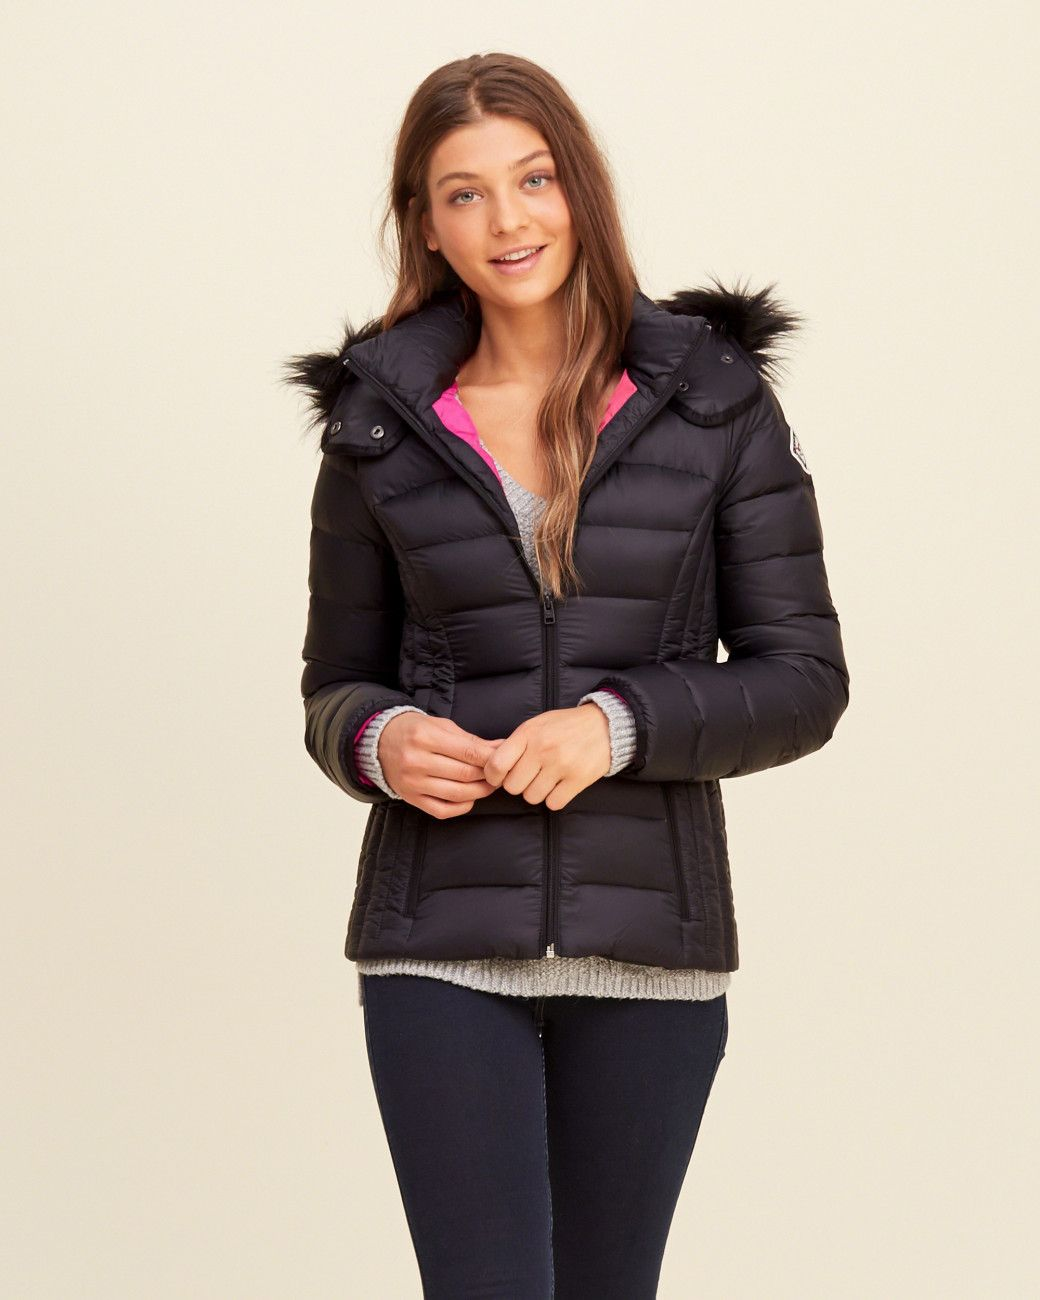 Hollister Multicolor Down Puffer Jacket Lyst Puffer Jackets Jackets Jackets For Women [ 1300 x 1040 Pixel ]